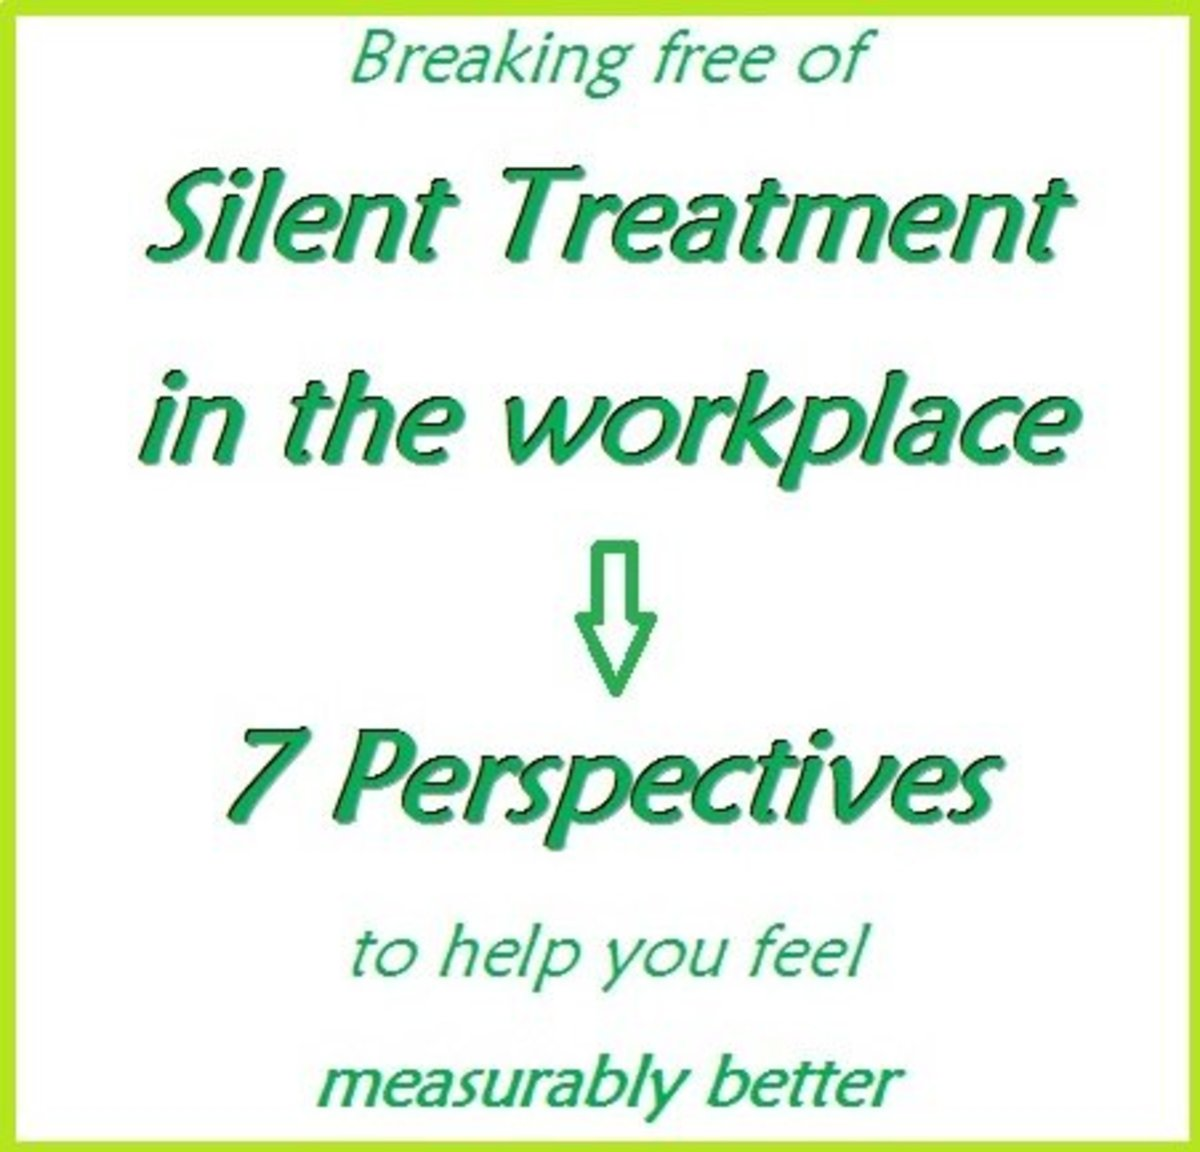 Silent Treatment in the Workplace - Strengthening Yourself in preparation for taking things further